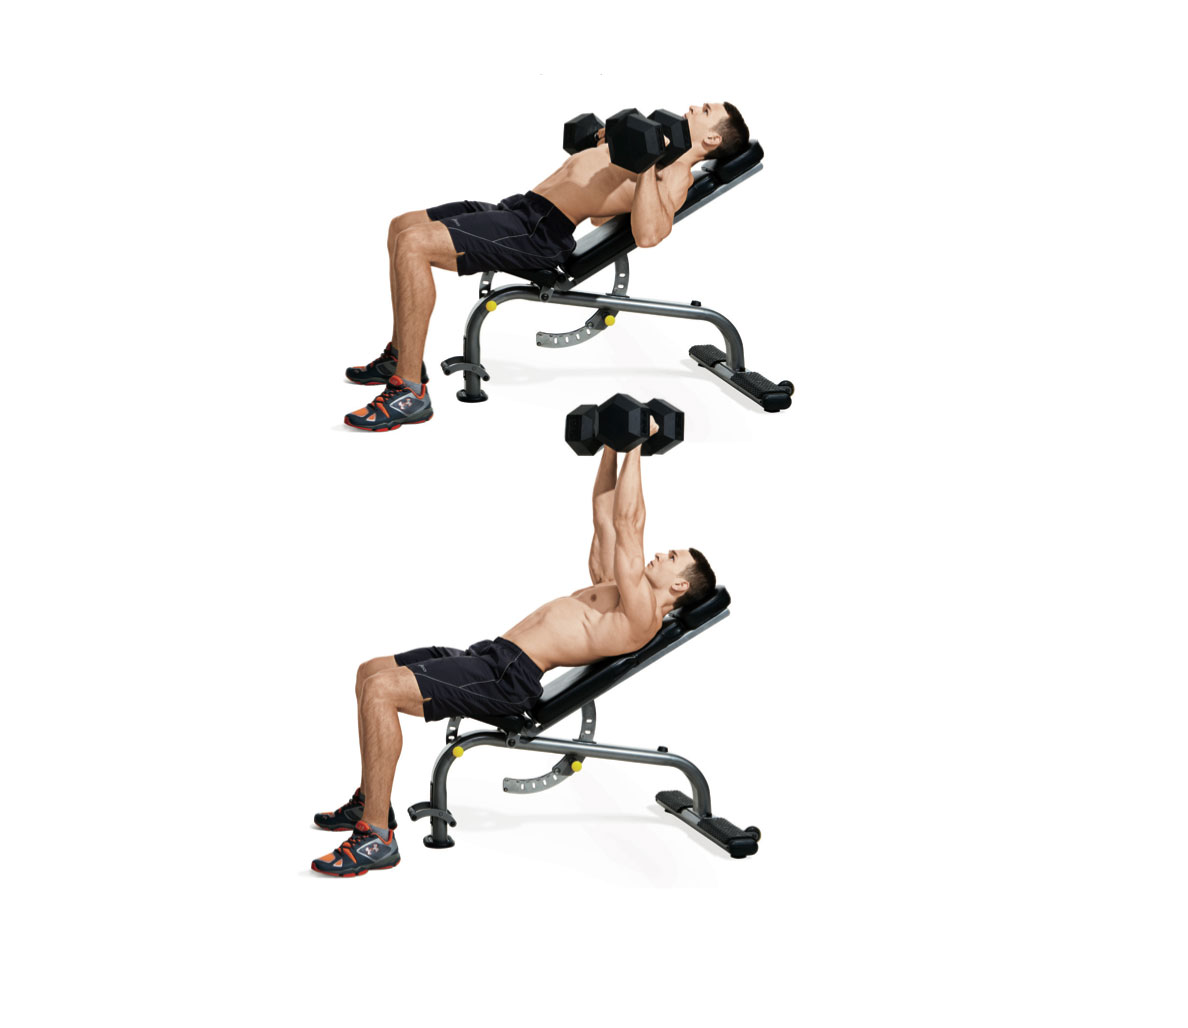 Incline dumbbell press for upper chest muscle growth